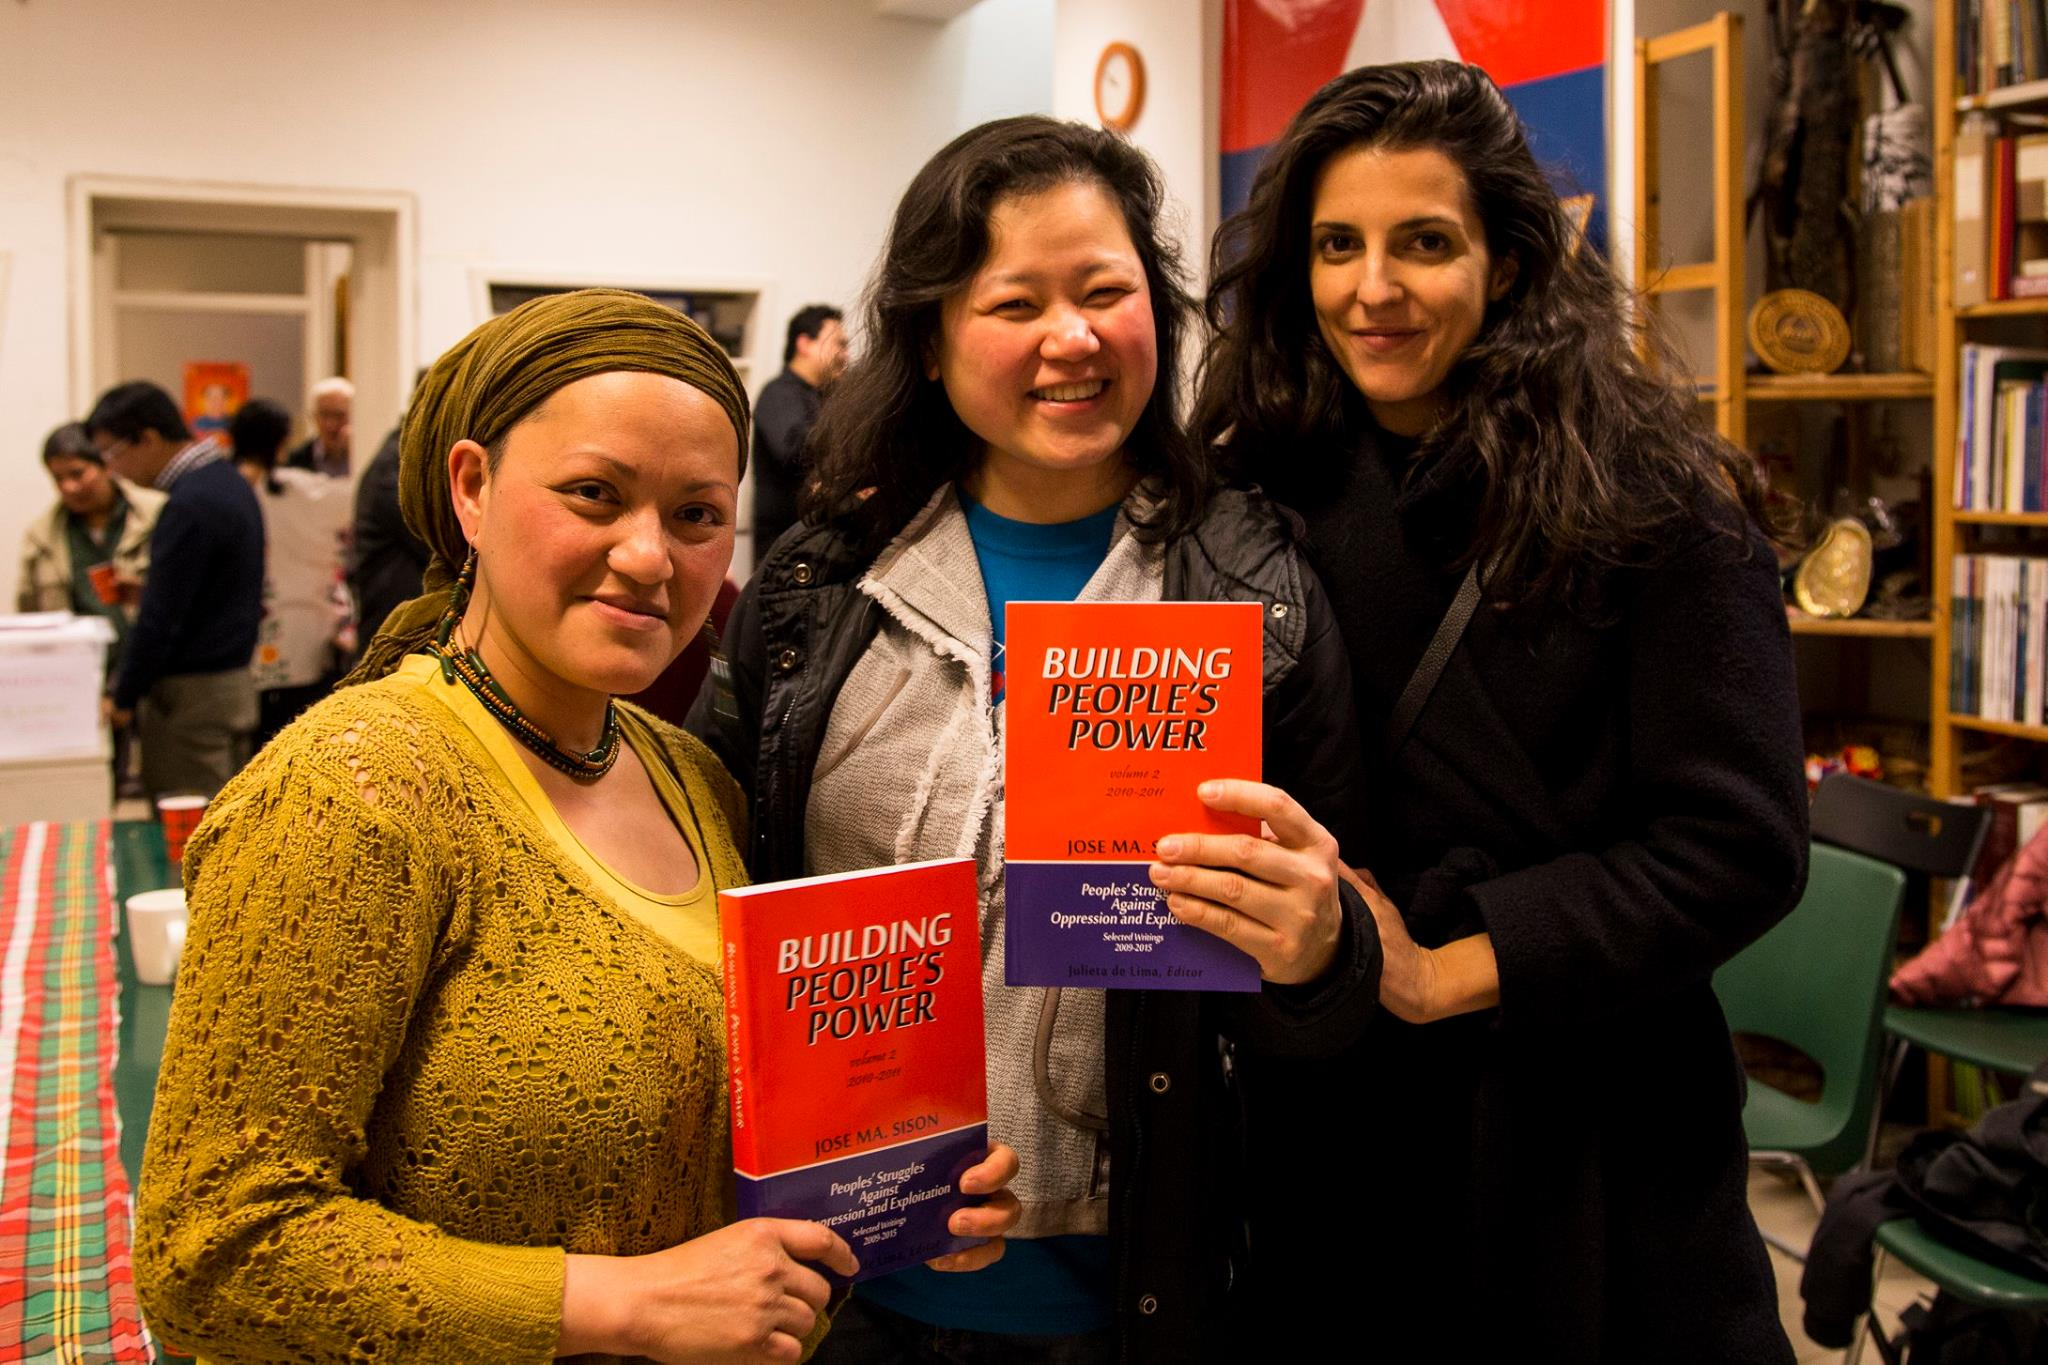 Joe Lampasa, Dr. Angie Gonzales and Paloma Polo hold a copy of the book